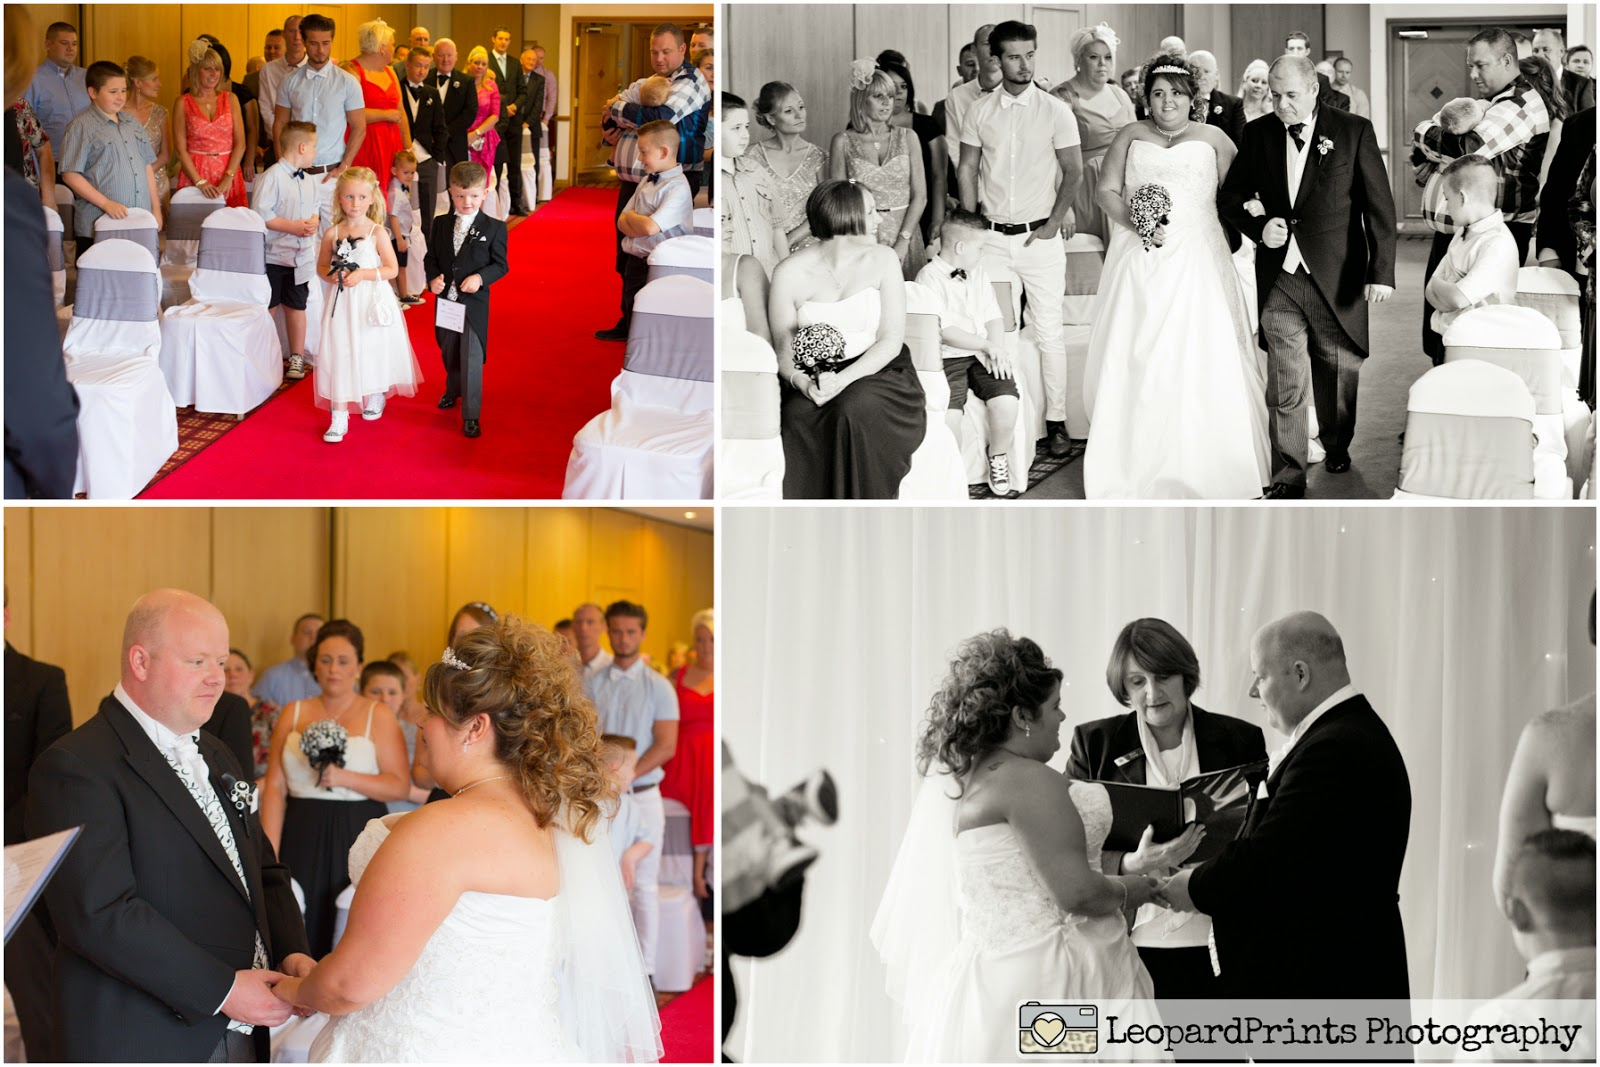 Wedding Chair Covers Newcastle Upon Tyne Exercise Ball Office Target Photographer At The Devere Village Hotel